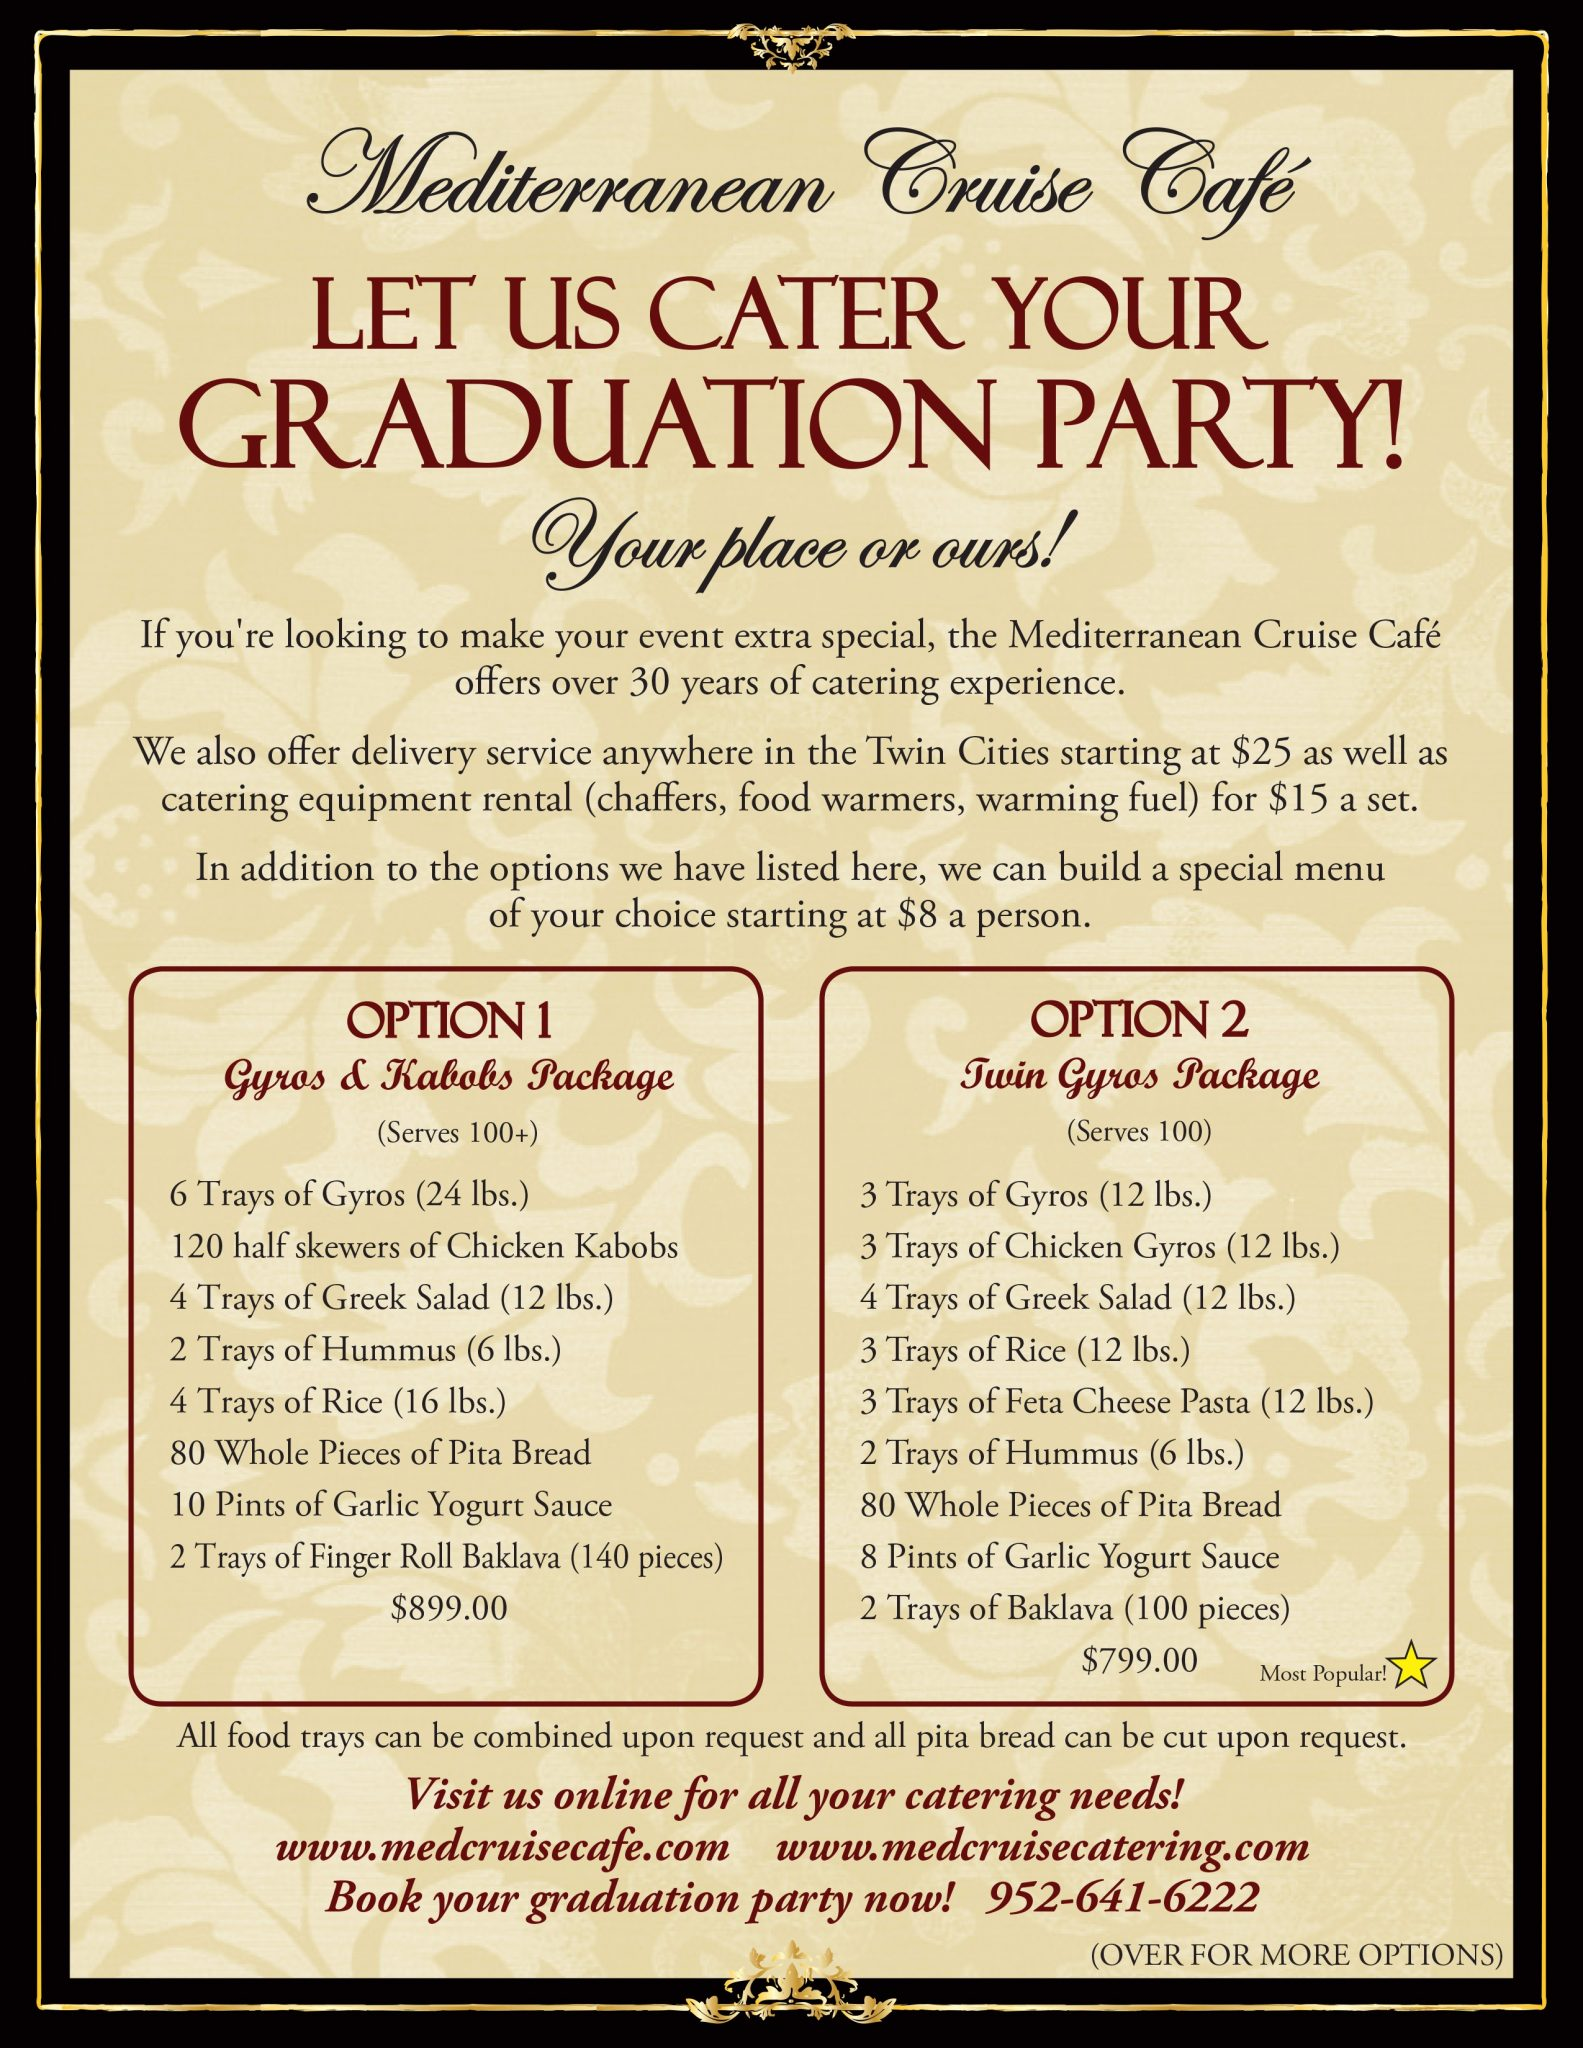 Cater your Grad. Party with us!